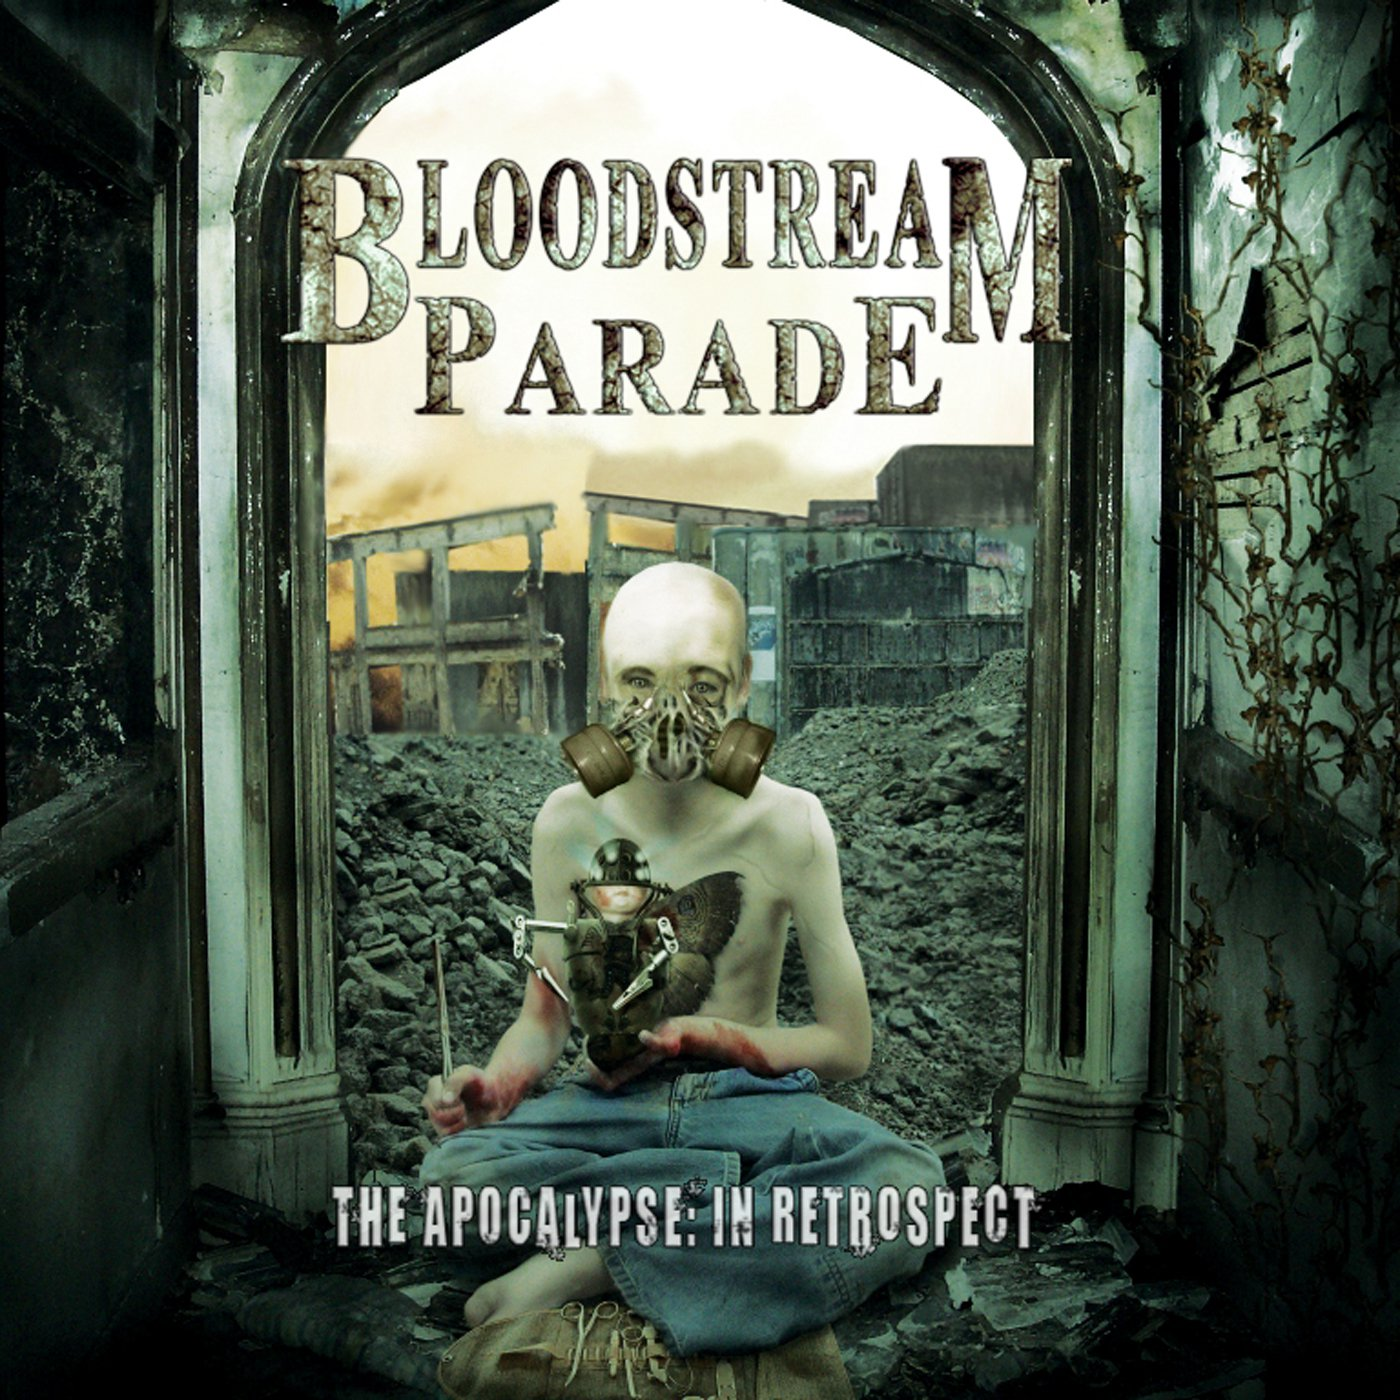 The Apocalypse In Retrospect by Bloodstream Parade USB Wristband